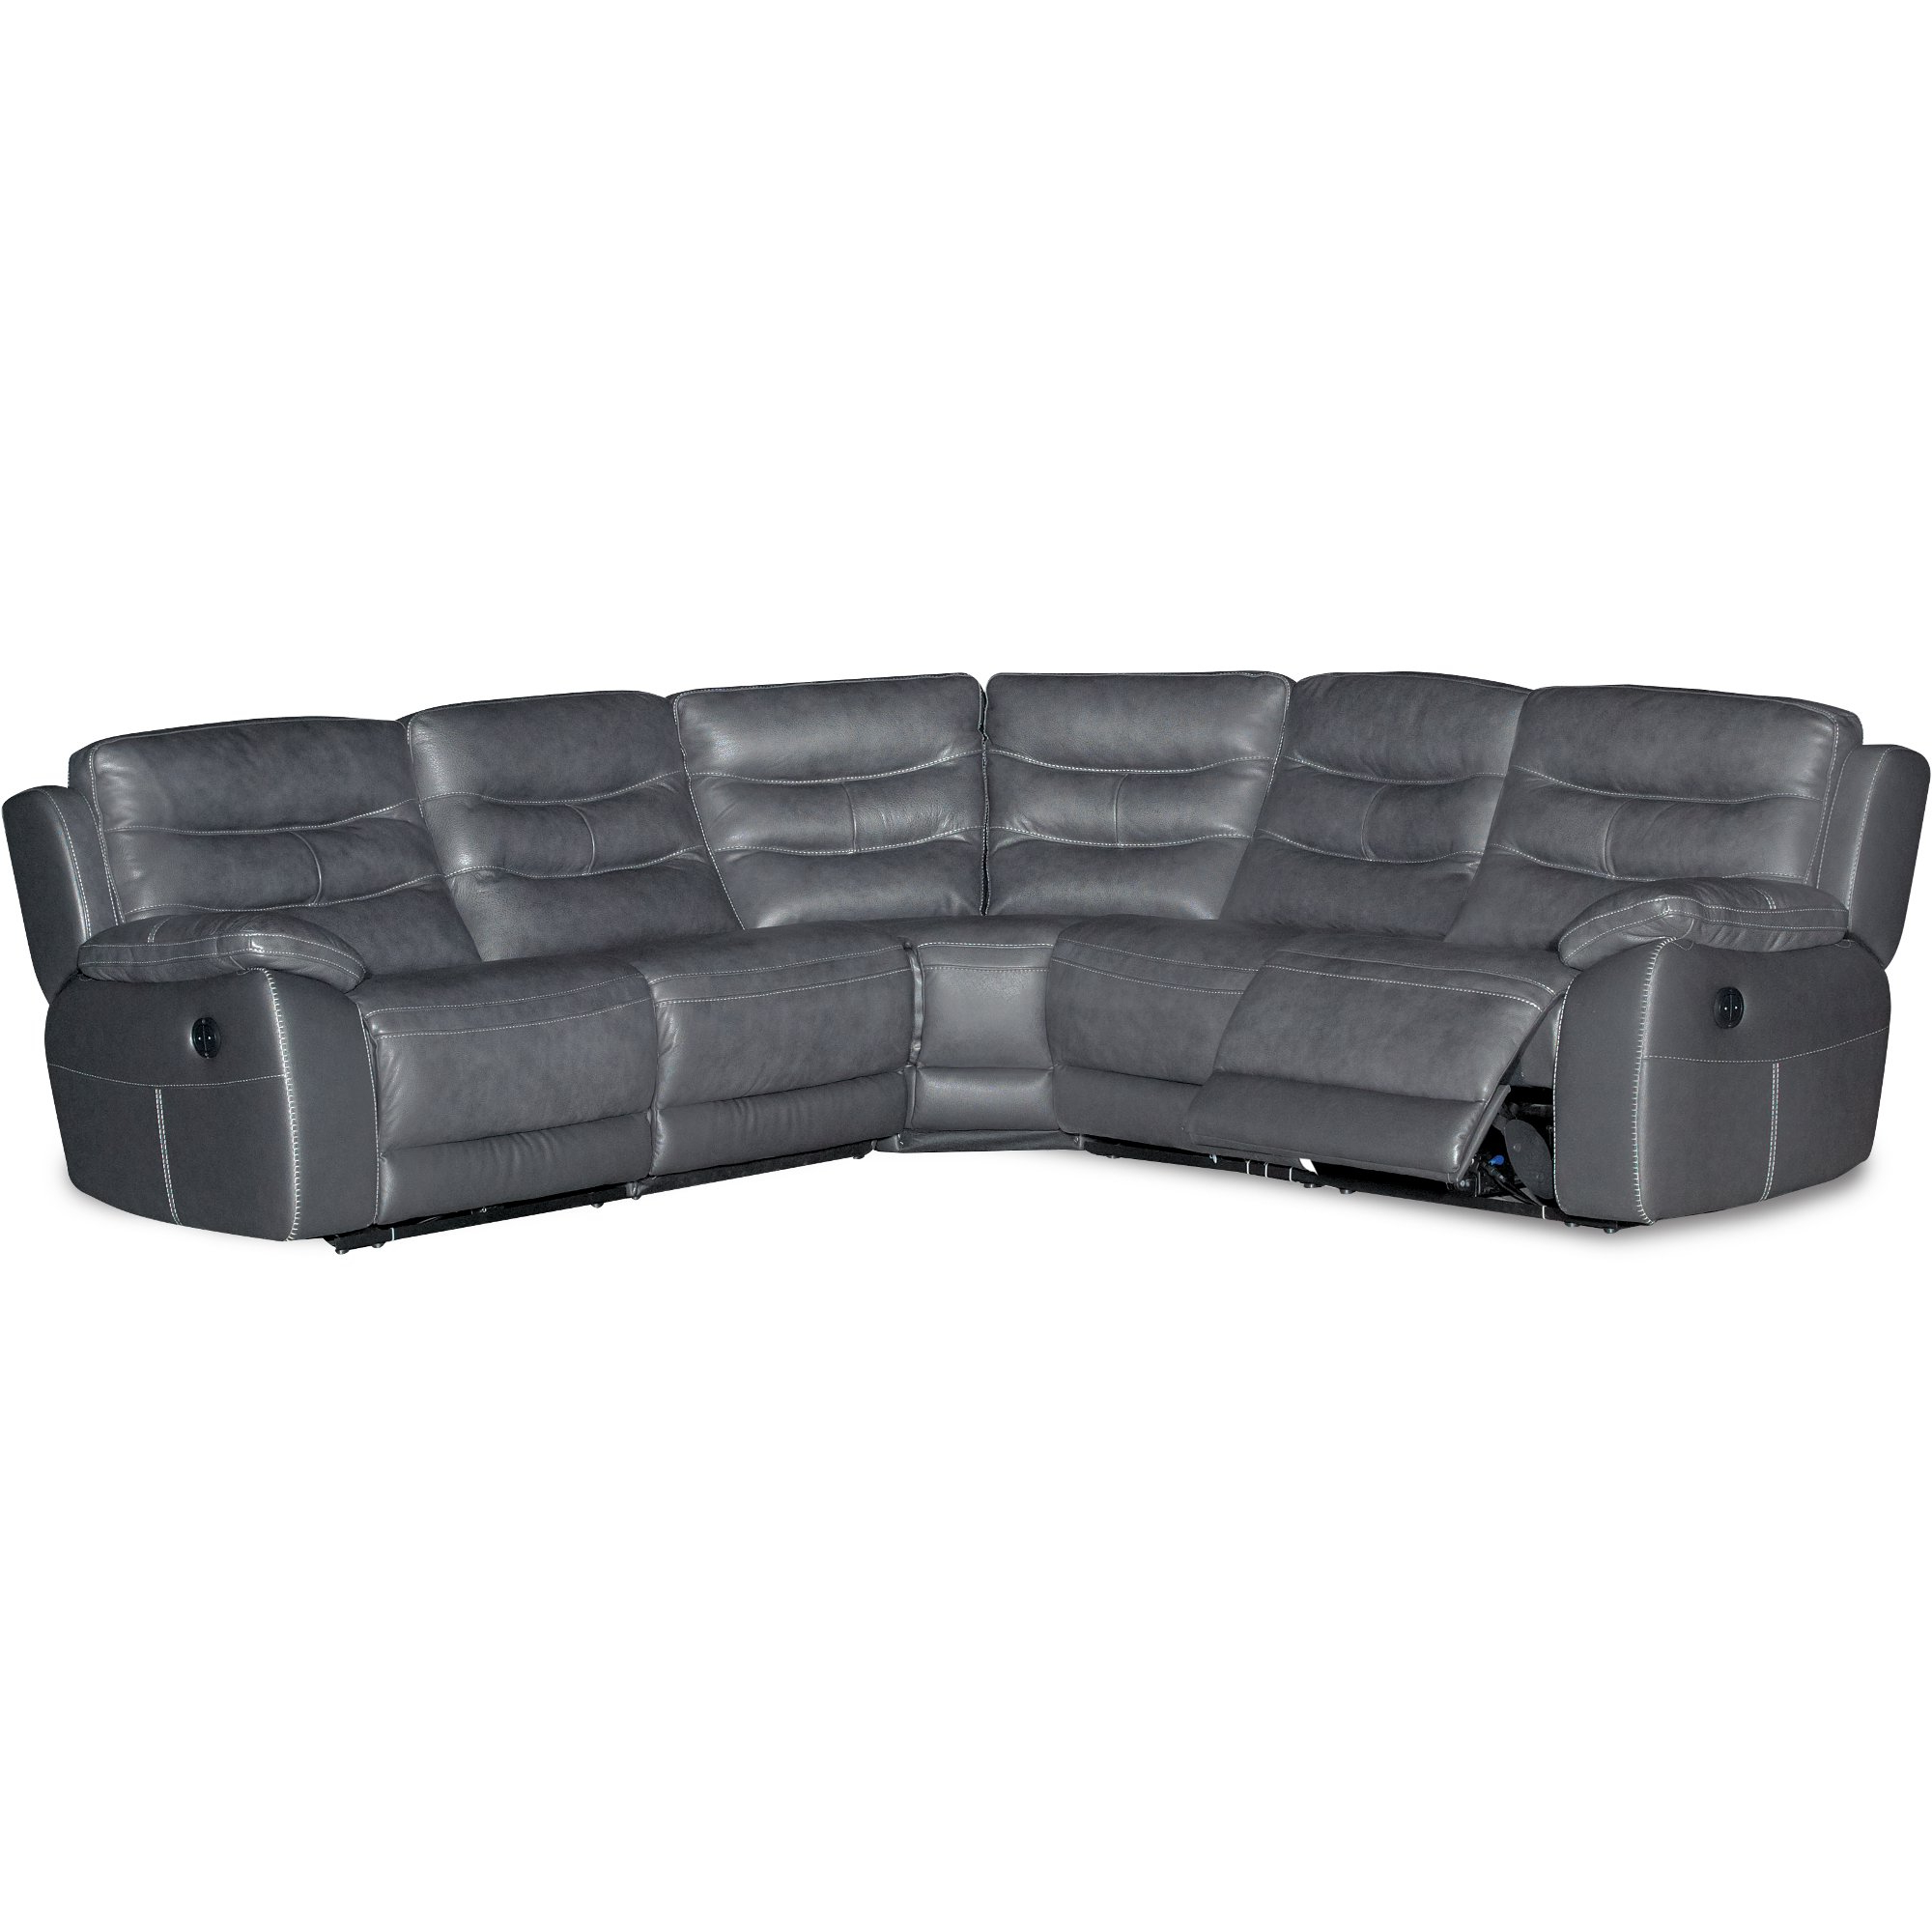 Charcoal Gray 5 Piece Power Reclining Sectional Sofa – Shawn (Gallery 8 of 20)